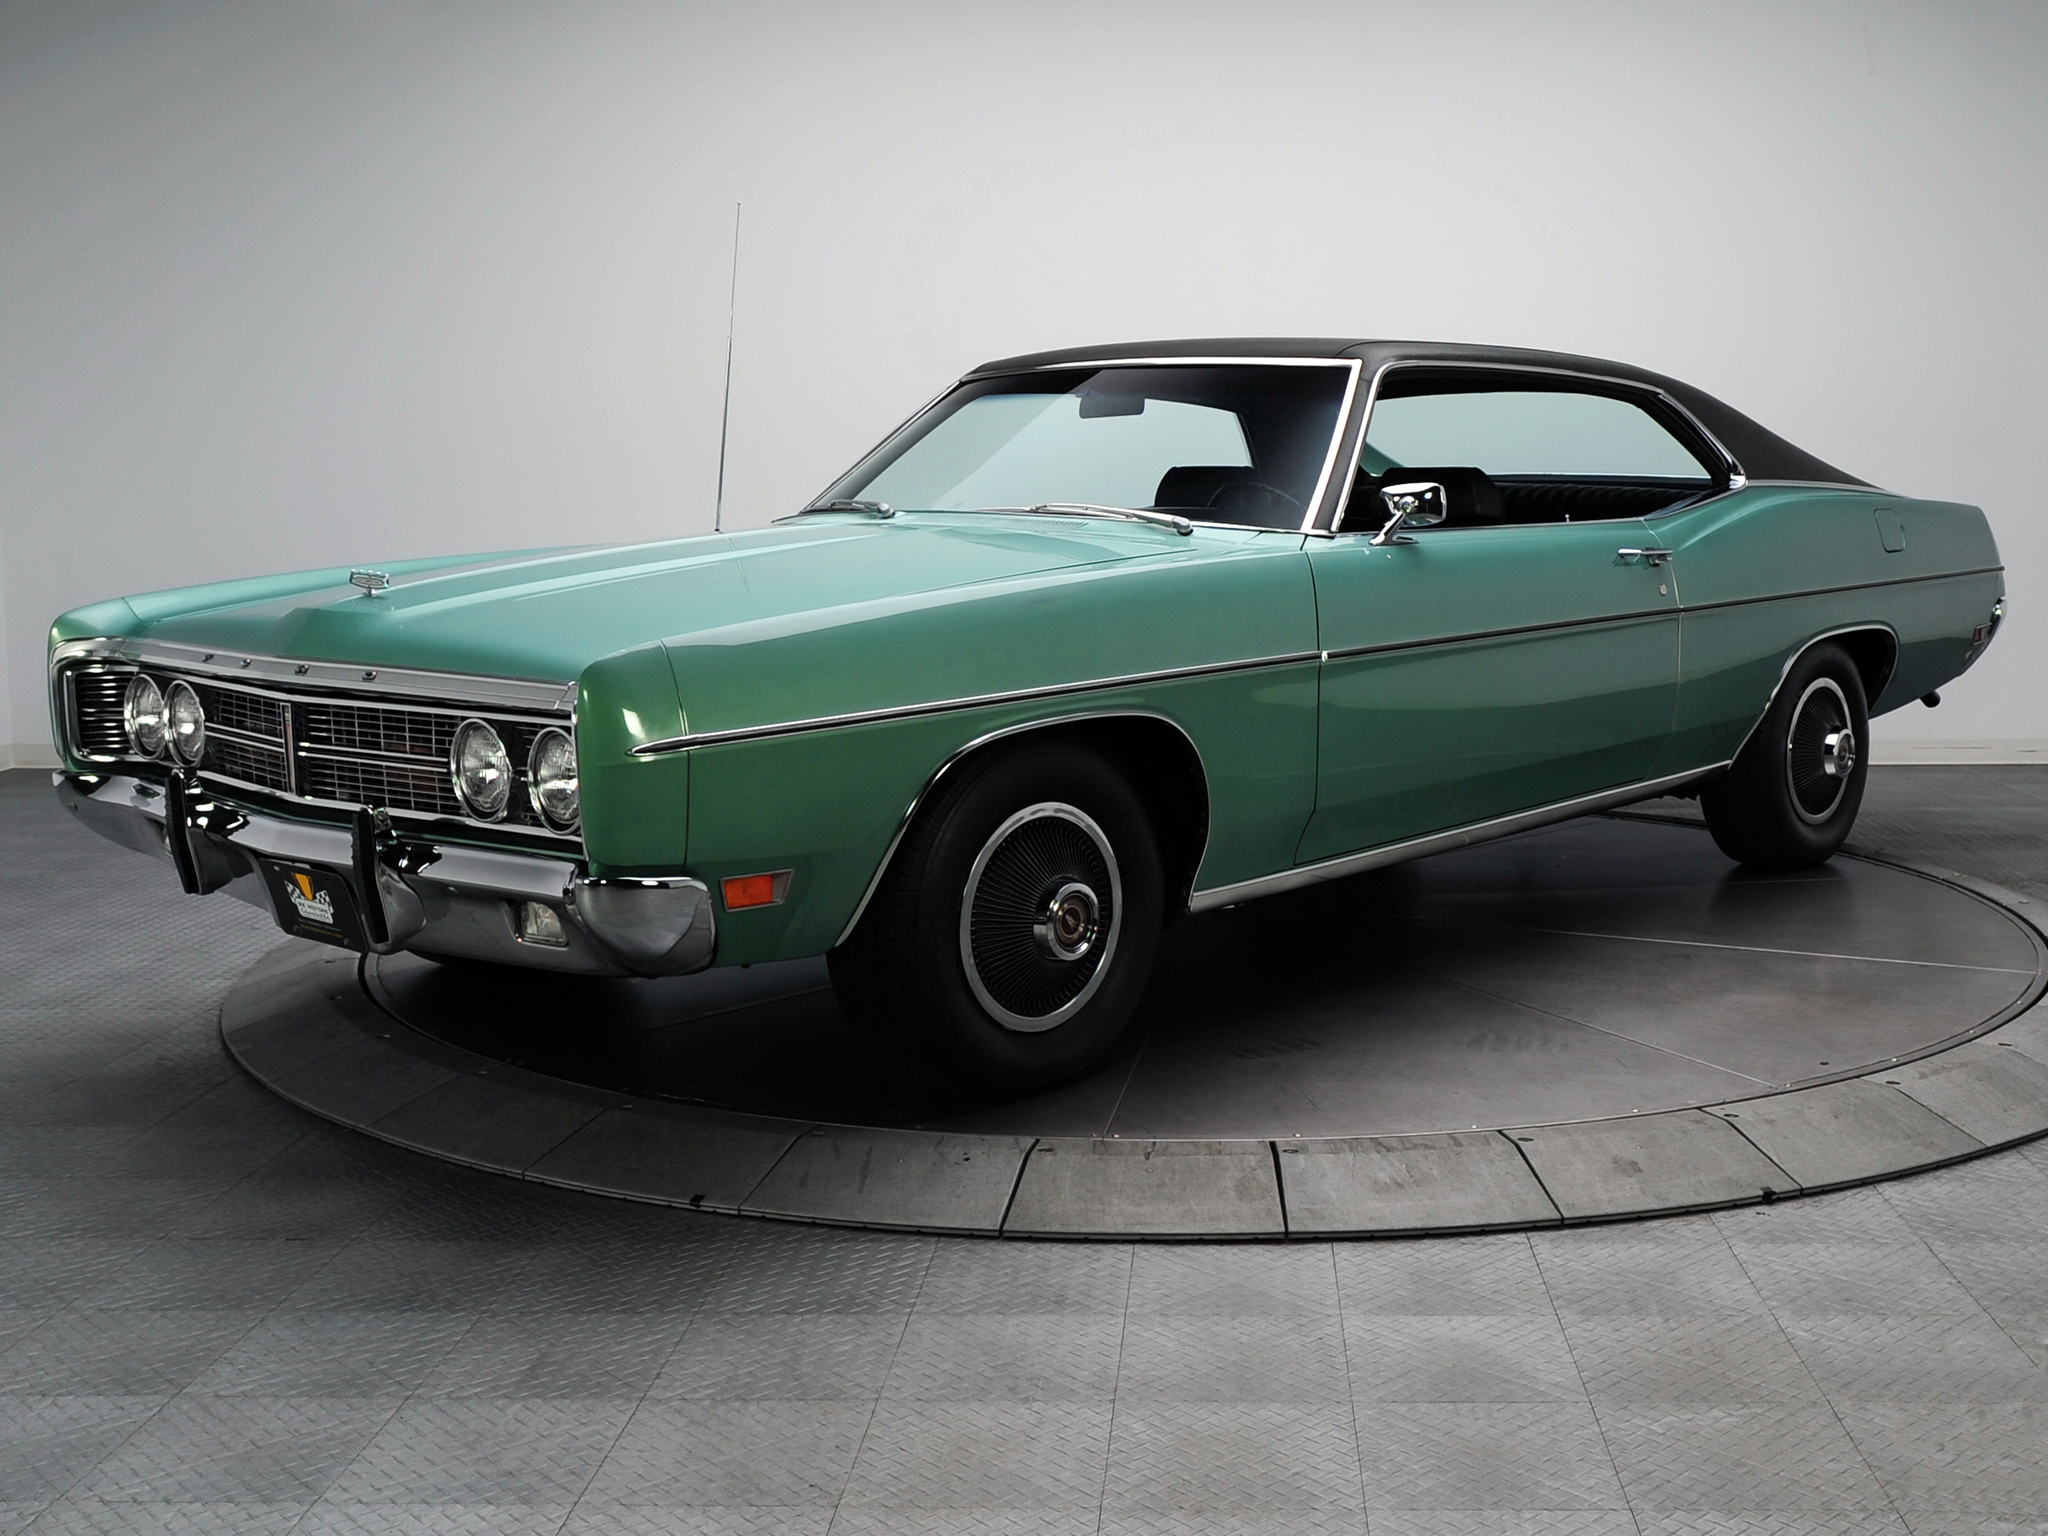 1970 ford galaxie 500 sportsroof classic muscle wallpaper background